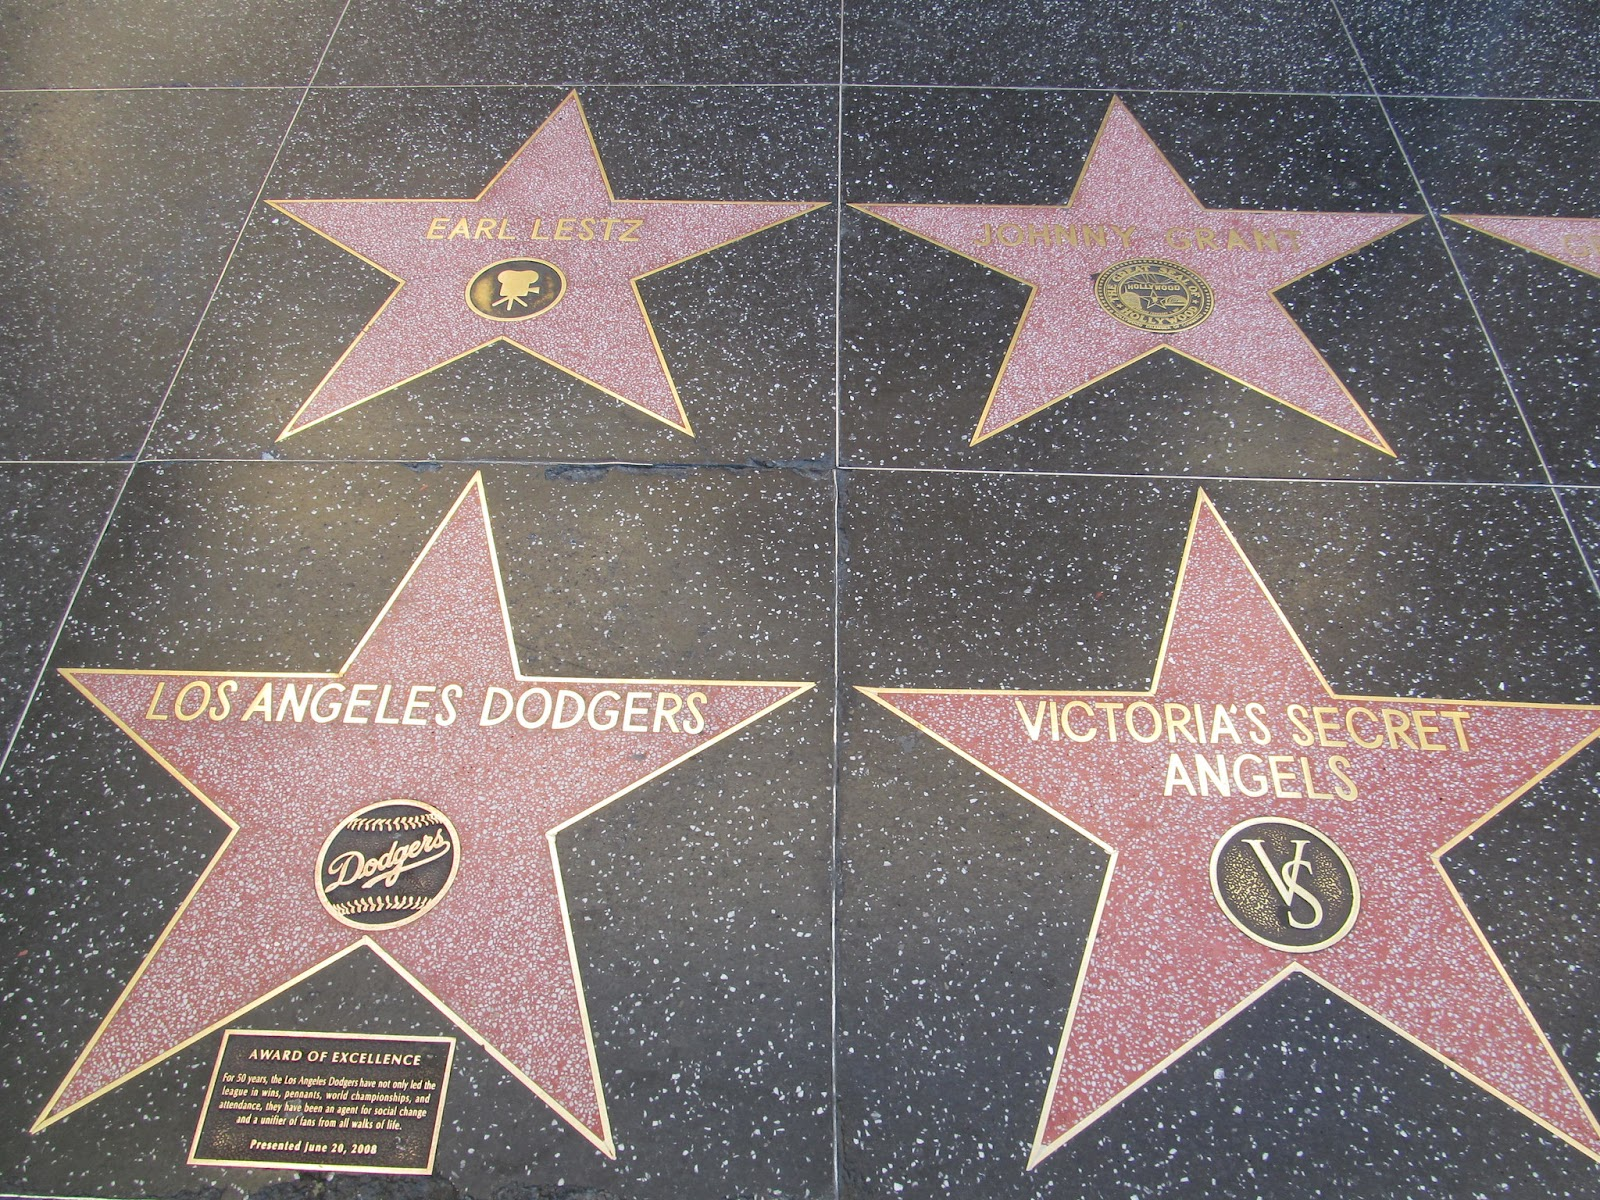 Hollywood Walk of Fame is one of the most important places in Hollywood